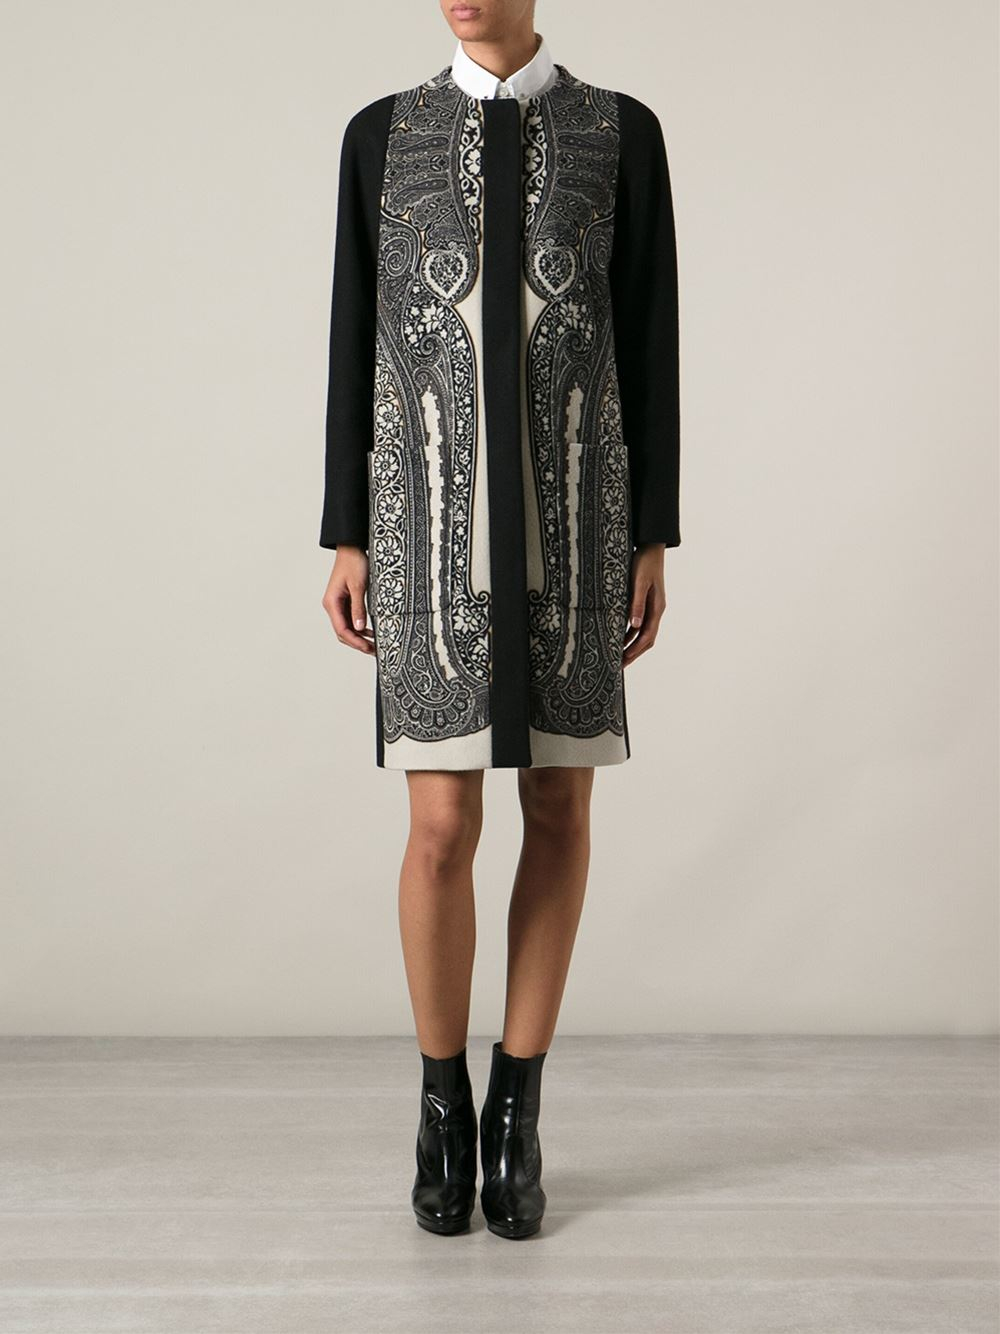 Lyst Etro Paisley Jacquard Overcoat In Black